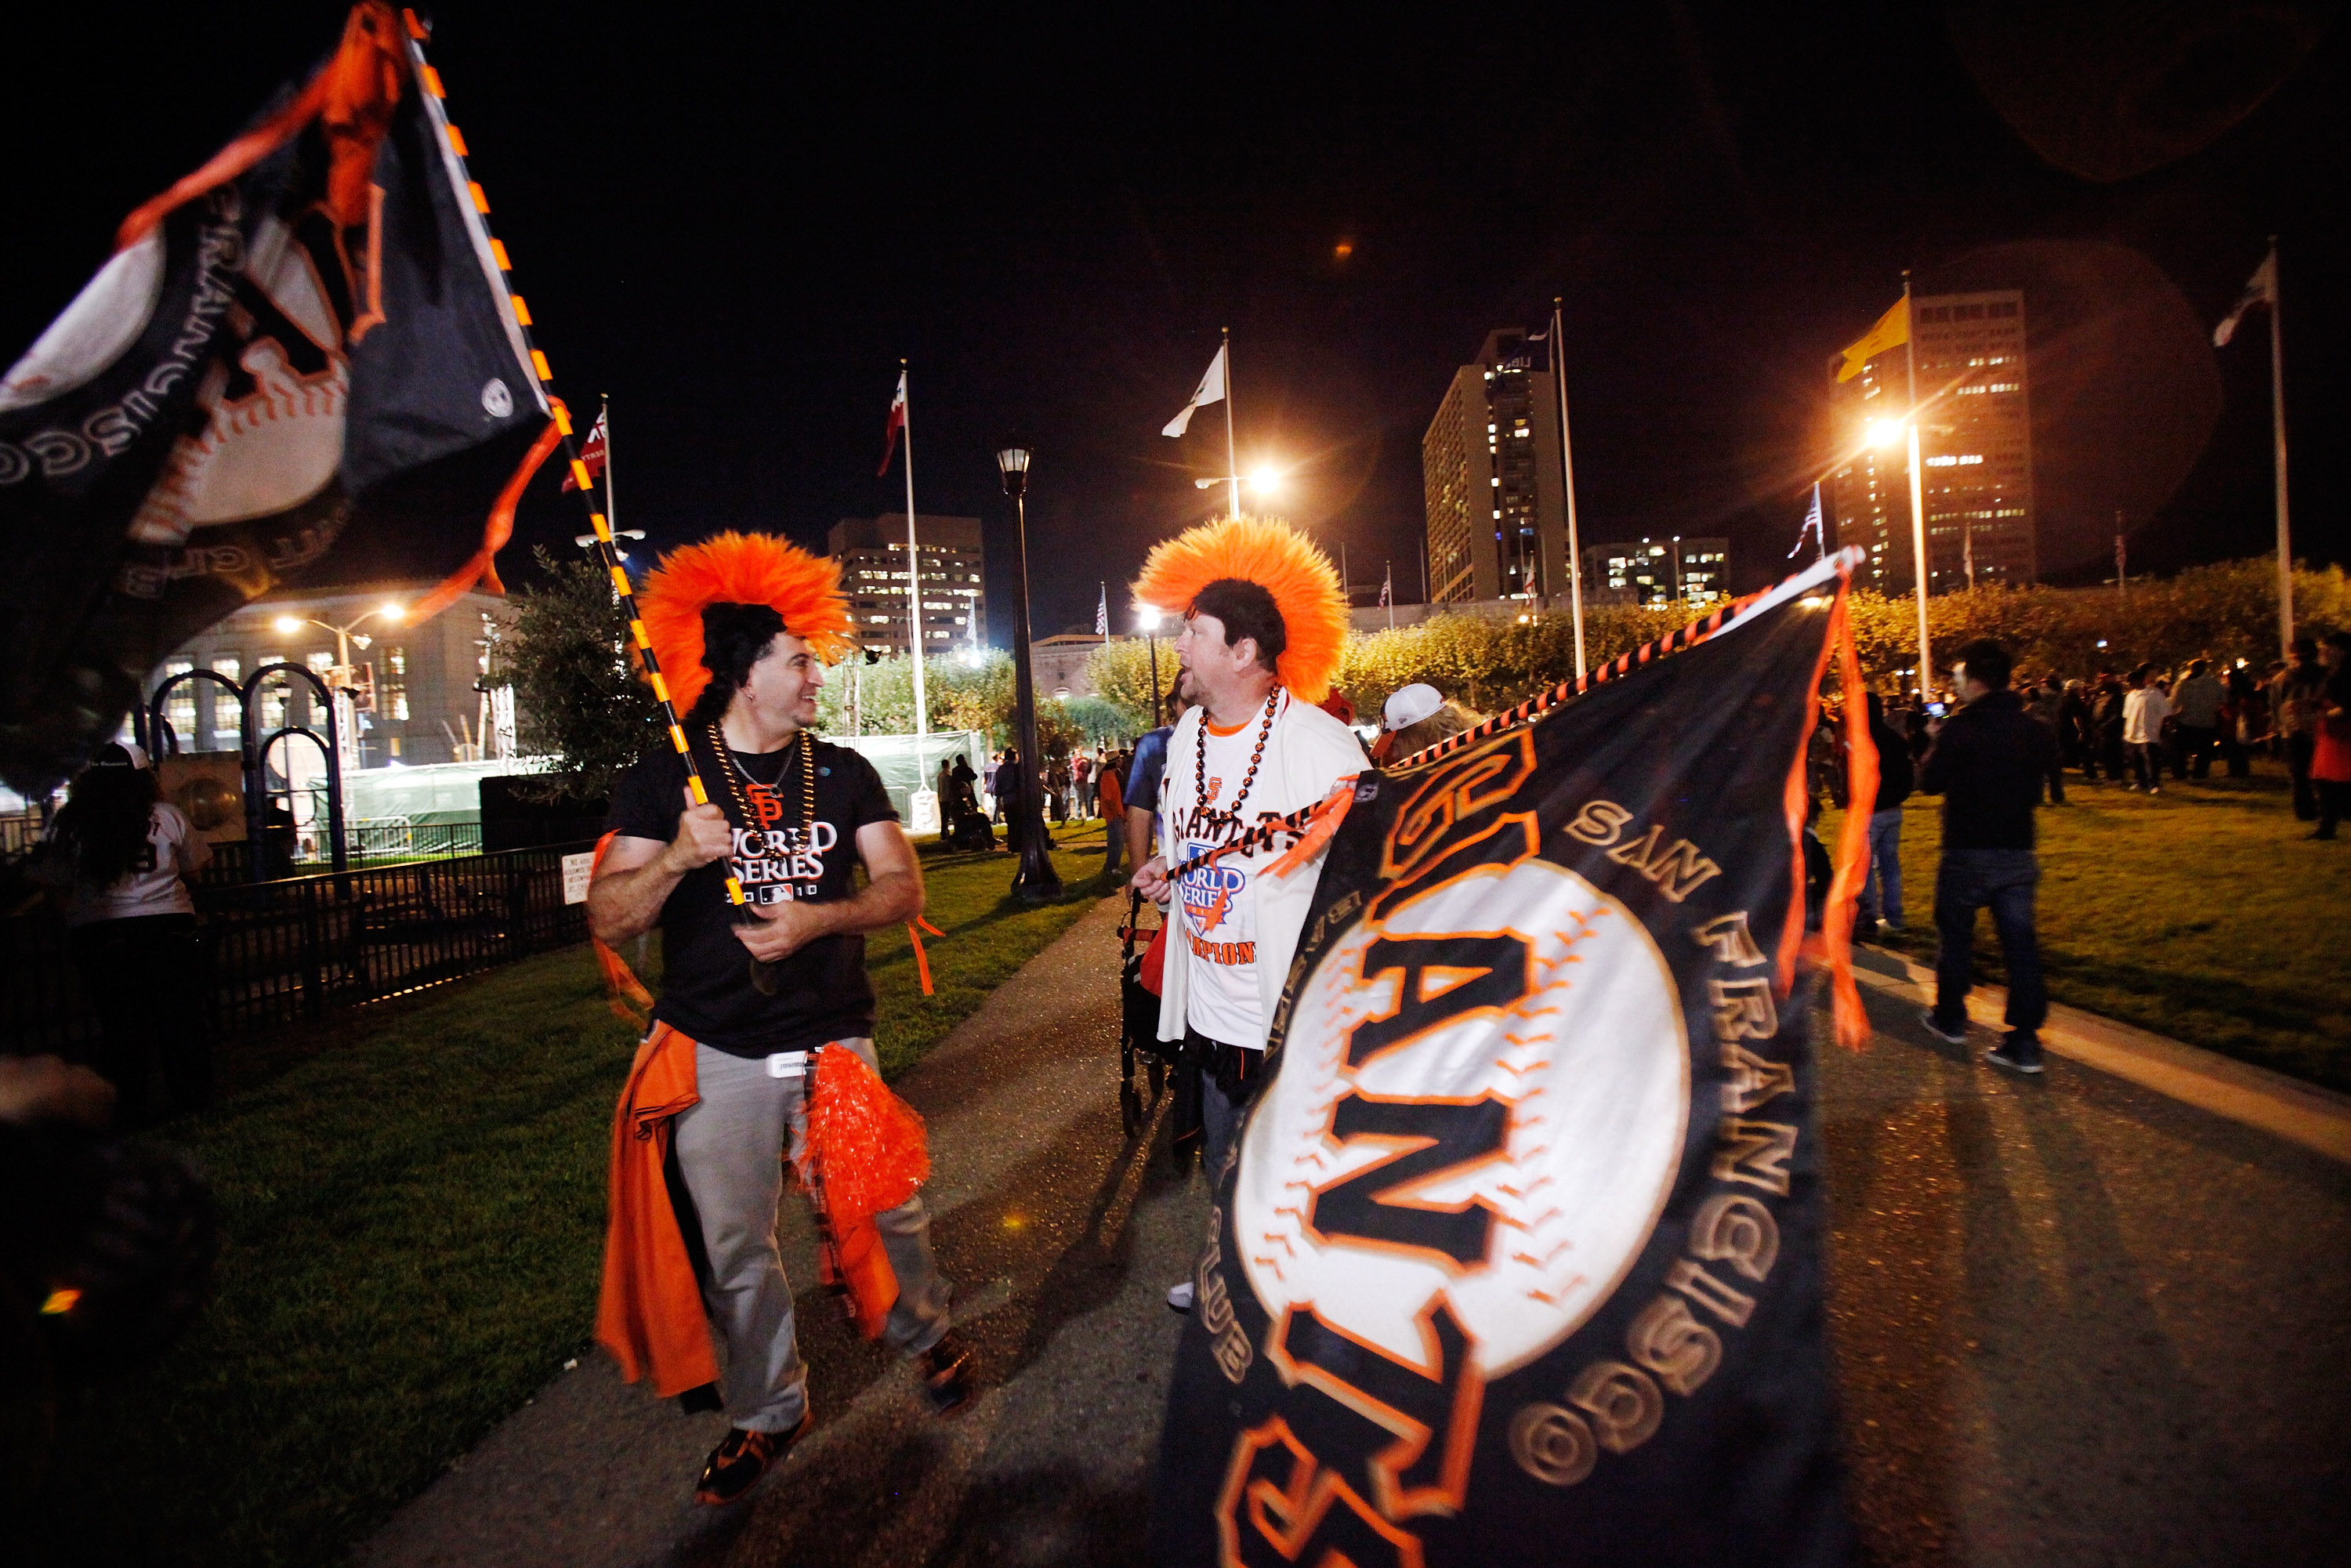 SAN FRANCISCO - NOVEMBER 01:  San Francisco Giants baseball fans celebrate the Giants World Series win at the Civic Center Plaza November 1, 2010 in San Francisco, California.  The Giants defeated the Texas Rangers 3-1 in game 5 to win their first title i